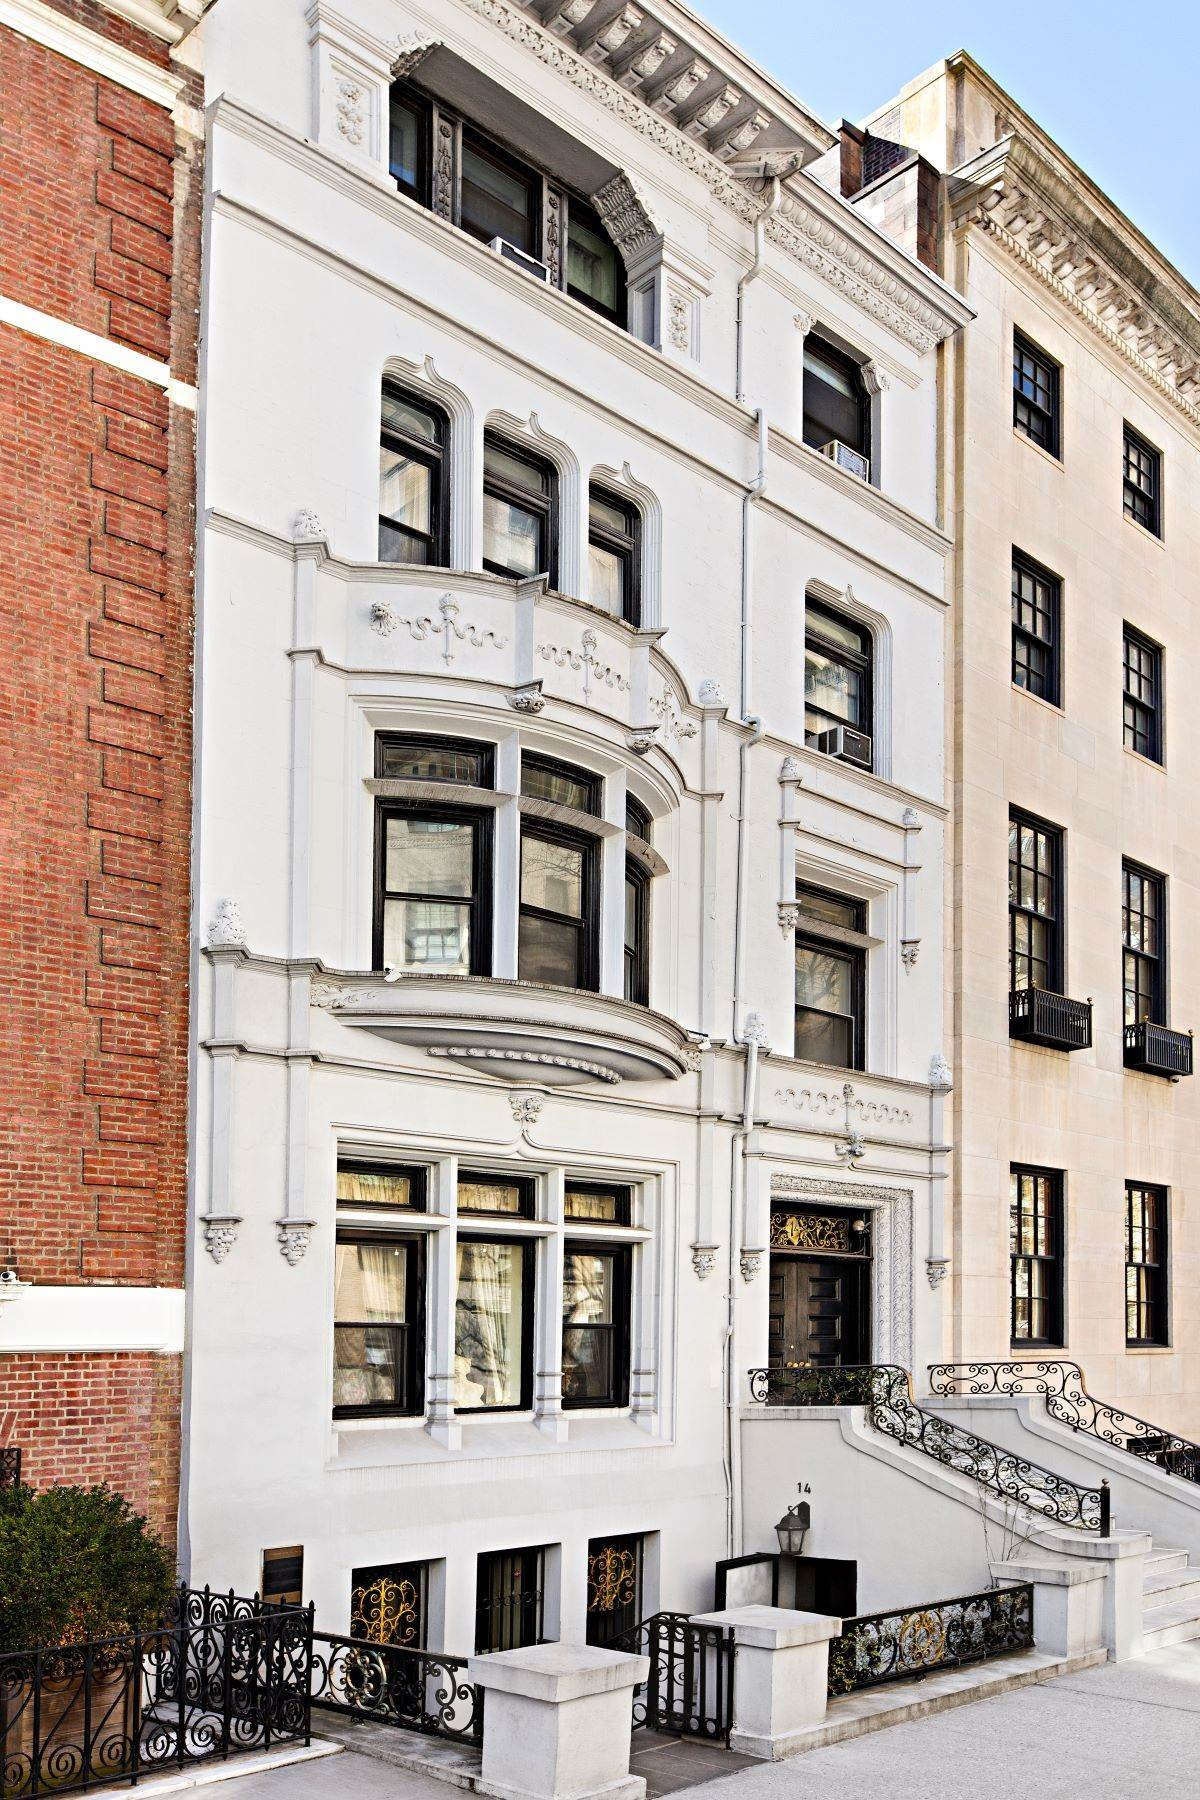 townhouses pour l Vente à 30' Historic Townhouse Opportunity 14 East 69th Street New York, New York 10021 États-Unis